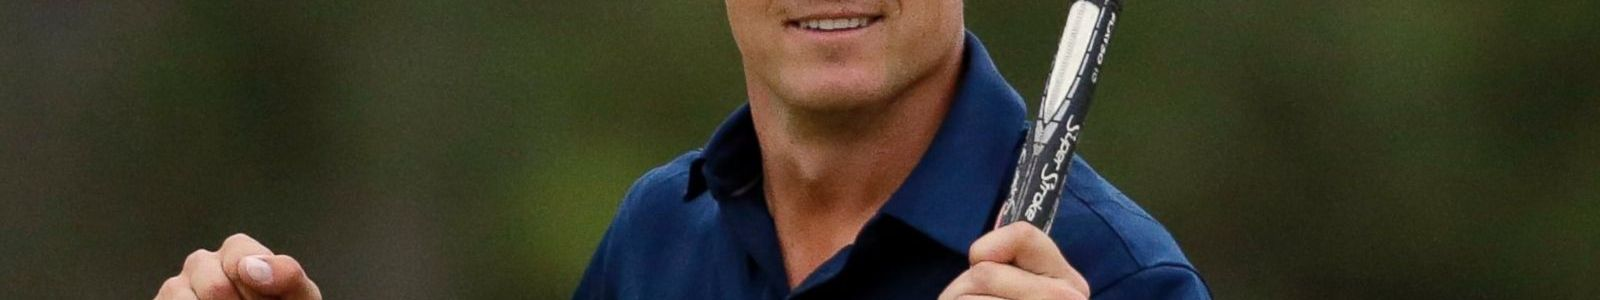 Jordan Spieth Masters 2021 Analysis, Odds and Best Bets   Free Masters Picks